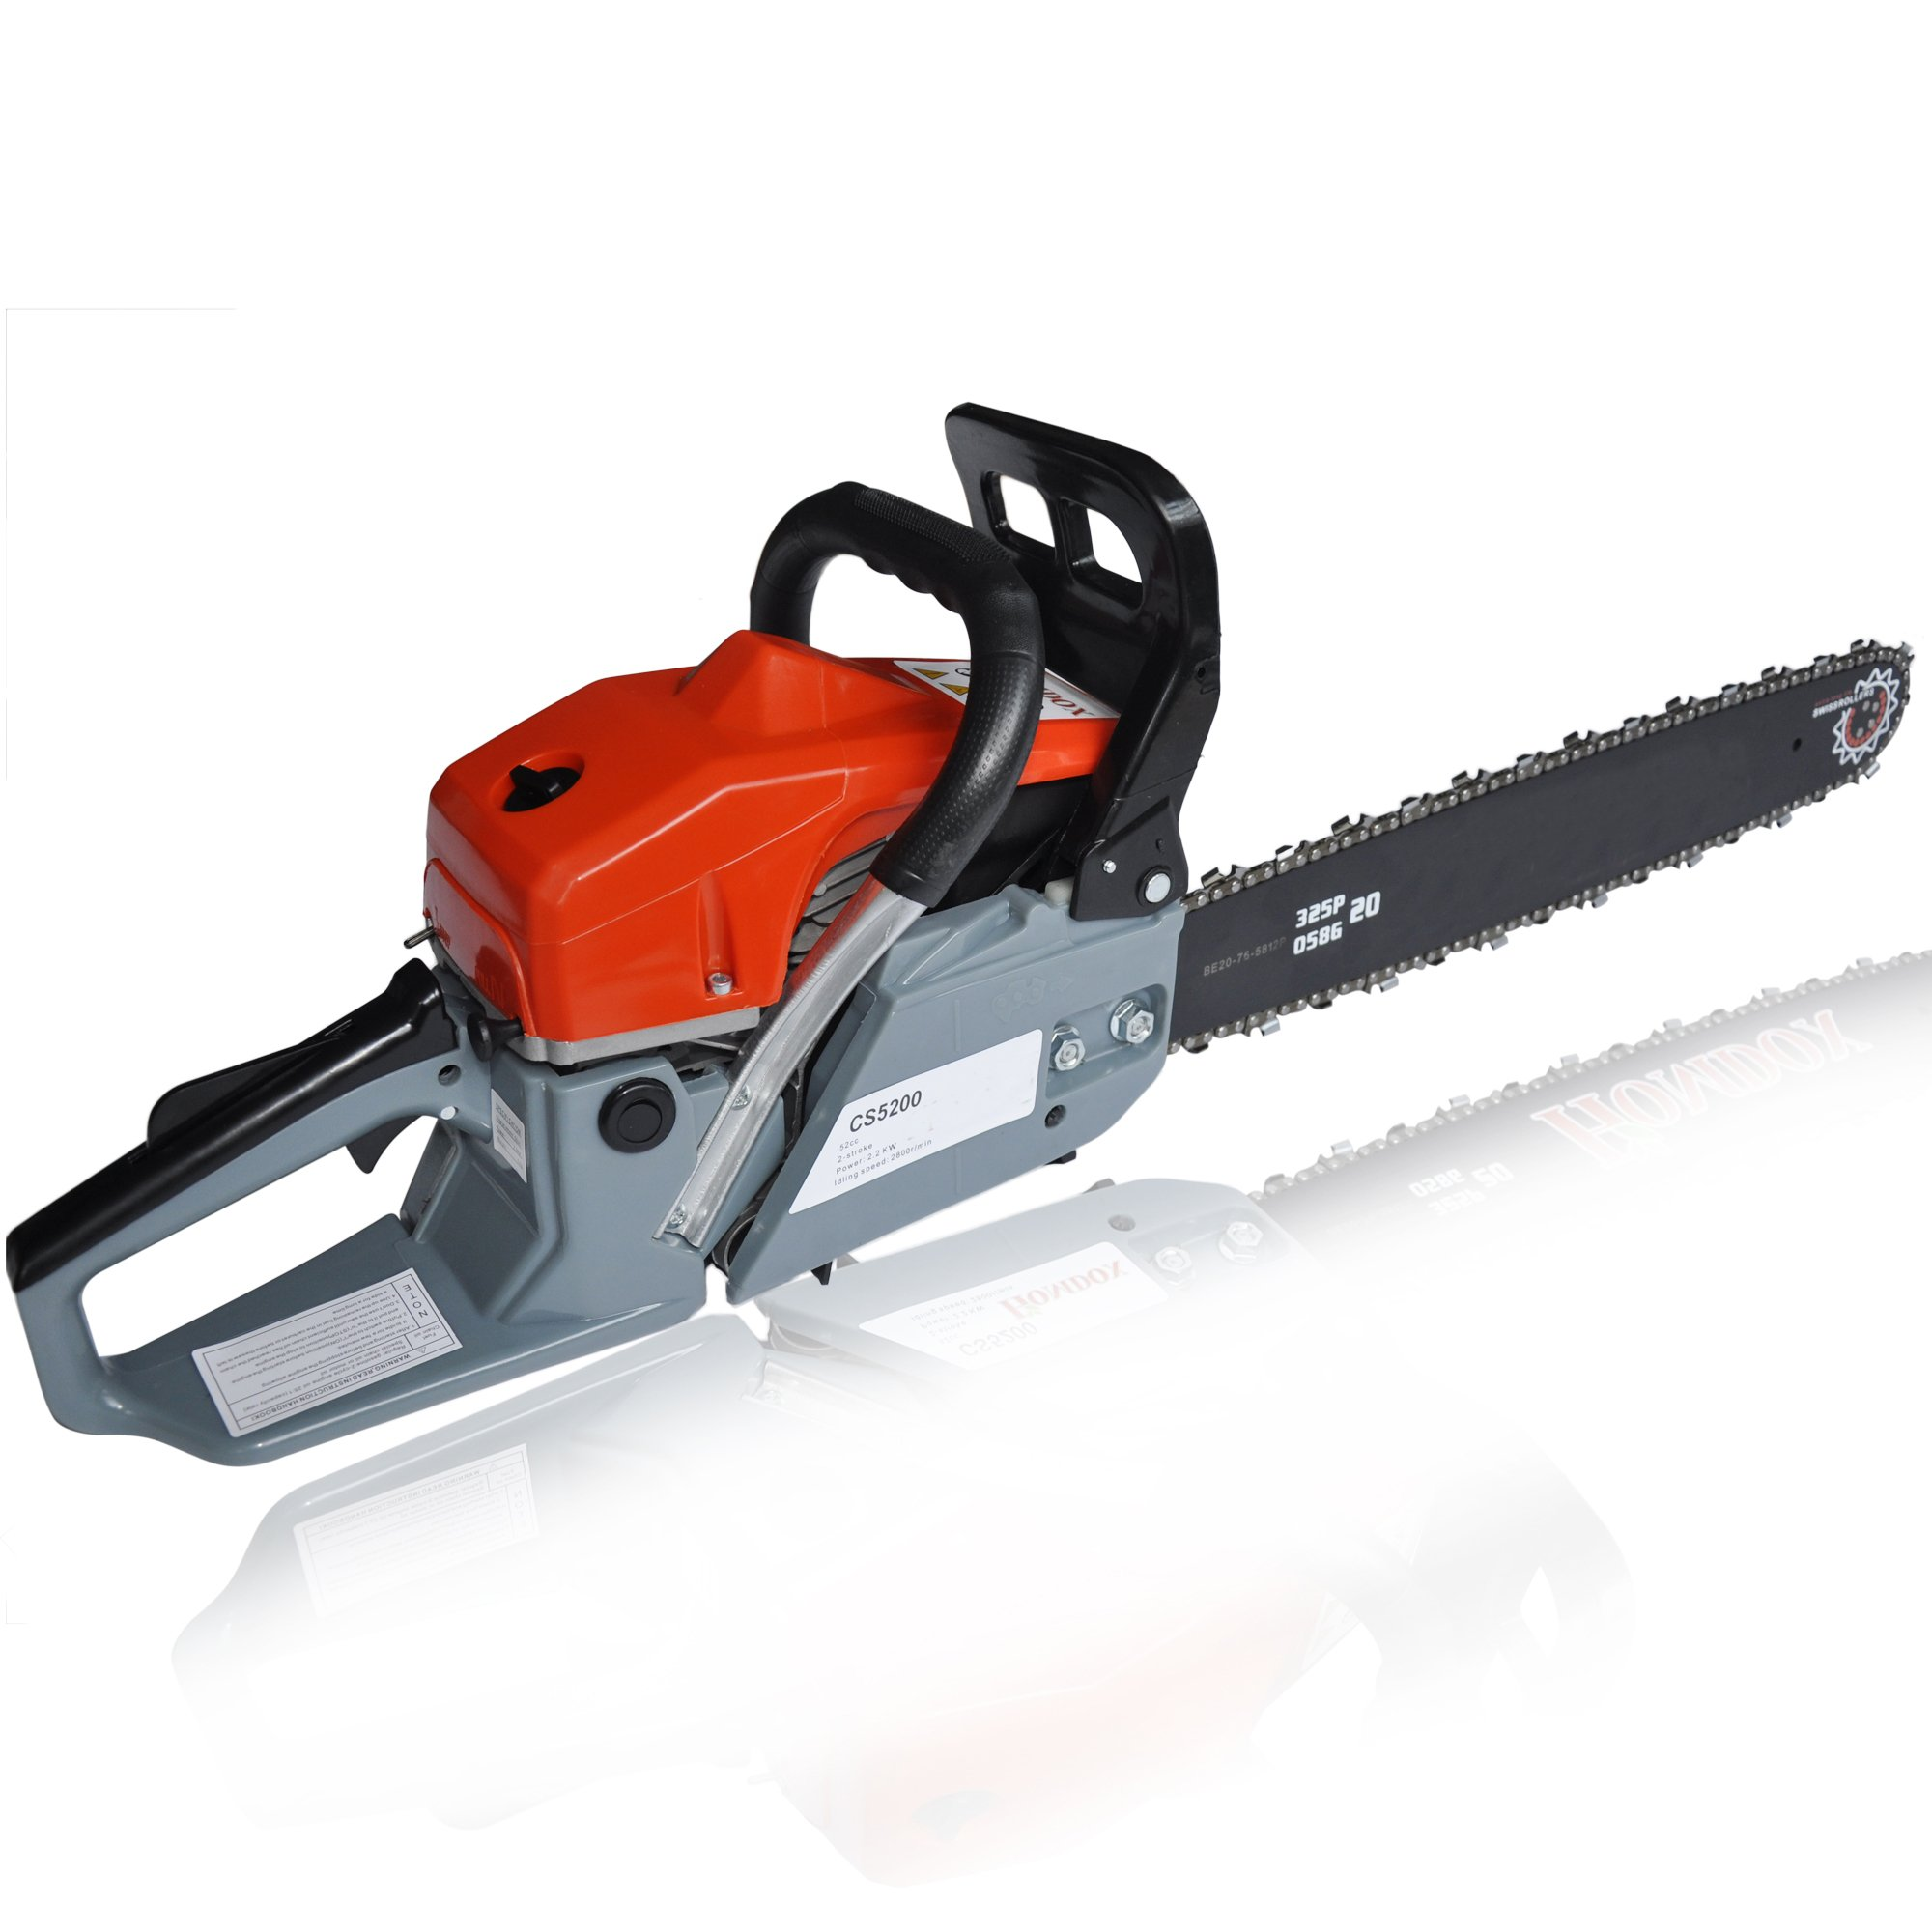 Binxin 20-Inch 62cc 4.2HP petrol Chain Saw with chainsaw Bar Cover, Tool Kit, Fuel Mixing Bottle, Manual (52cc)